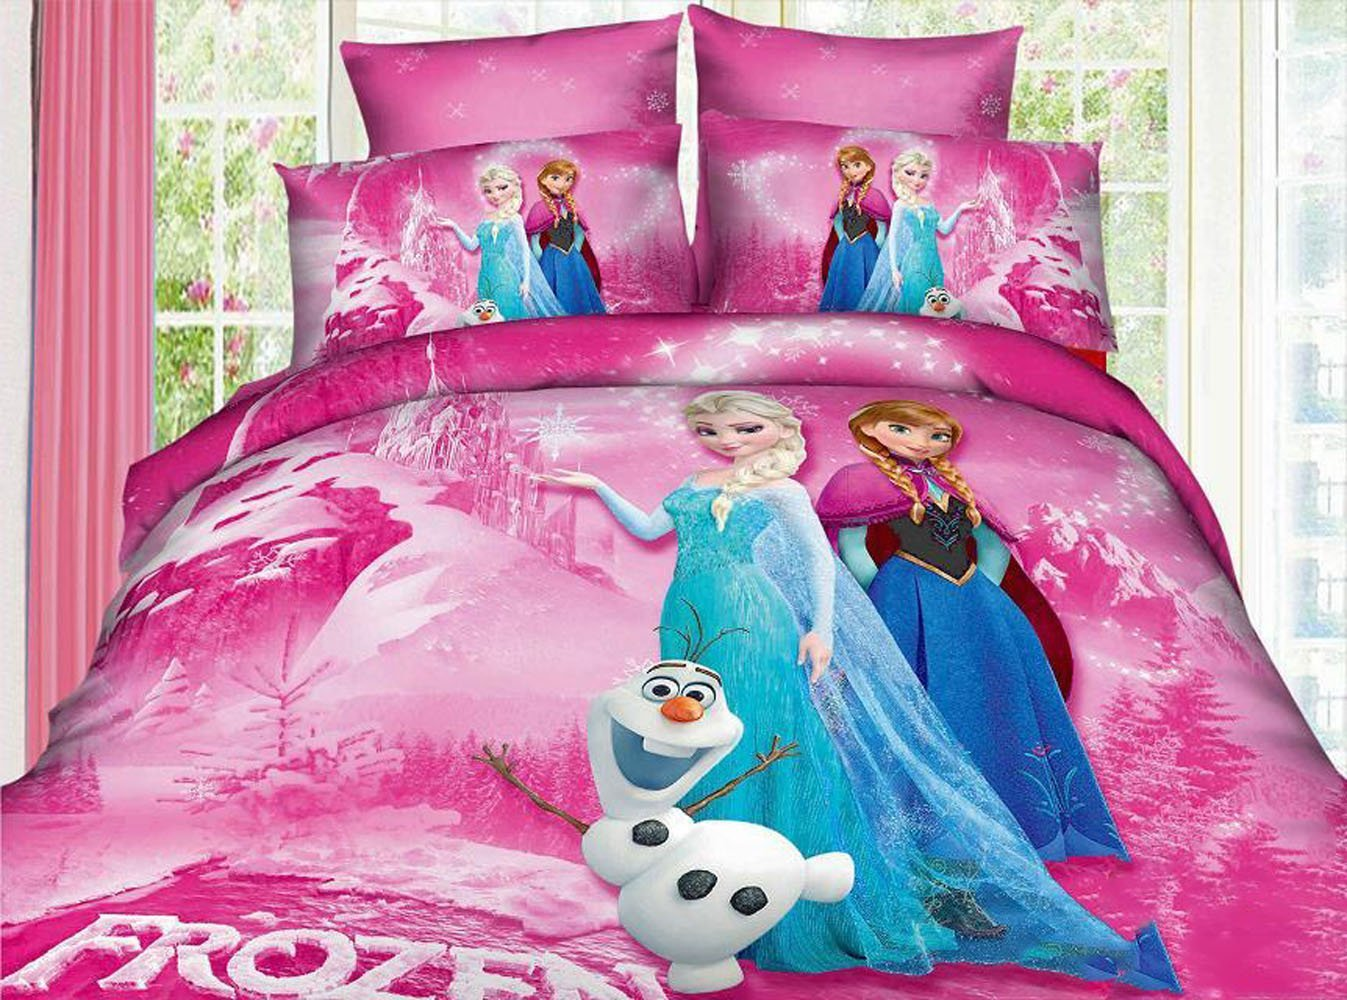 Image of: Frozen Bedding Set in Pink